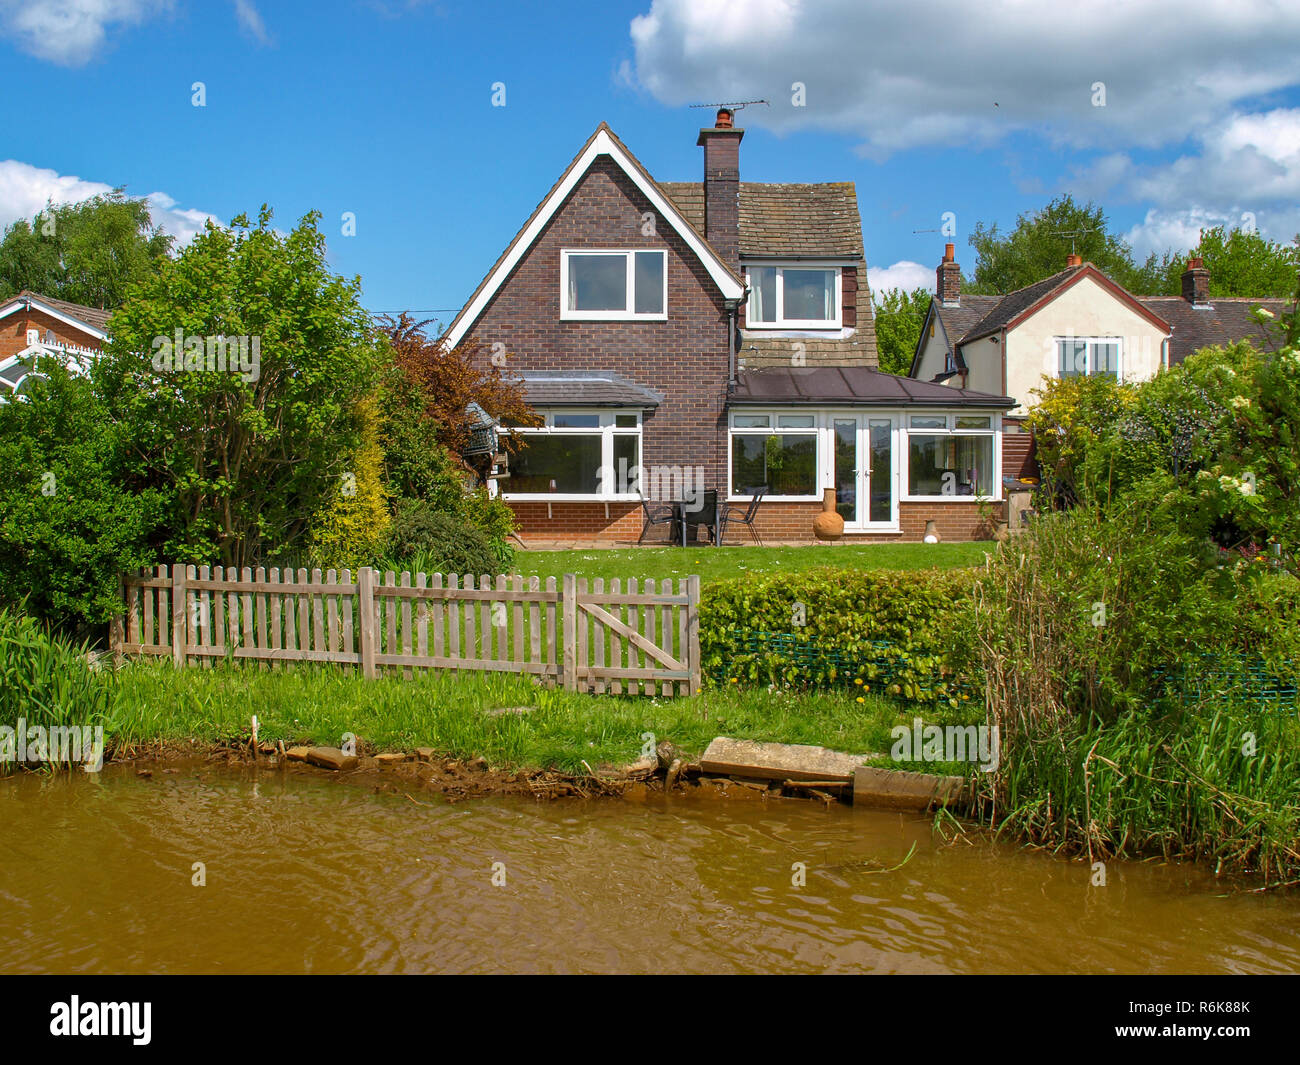 Canalside house on the Trent and Mersey Canal in the West Midlands in England. View from the boat. - Stock Image